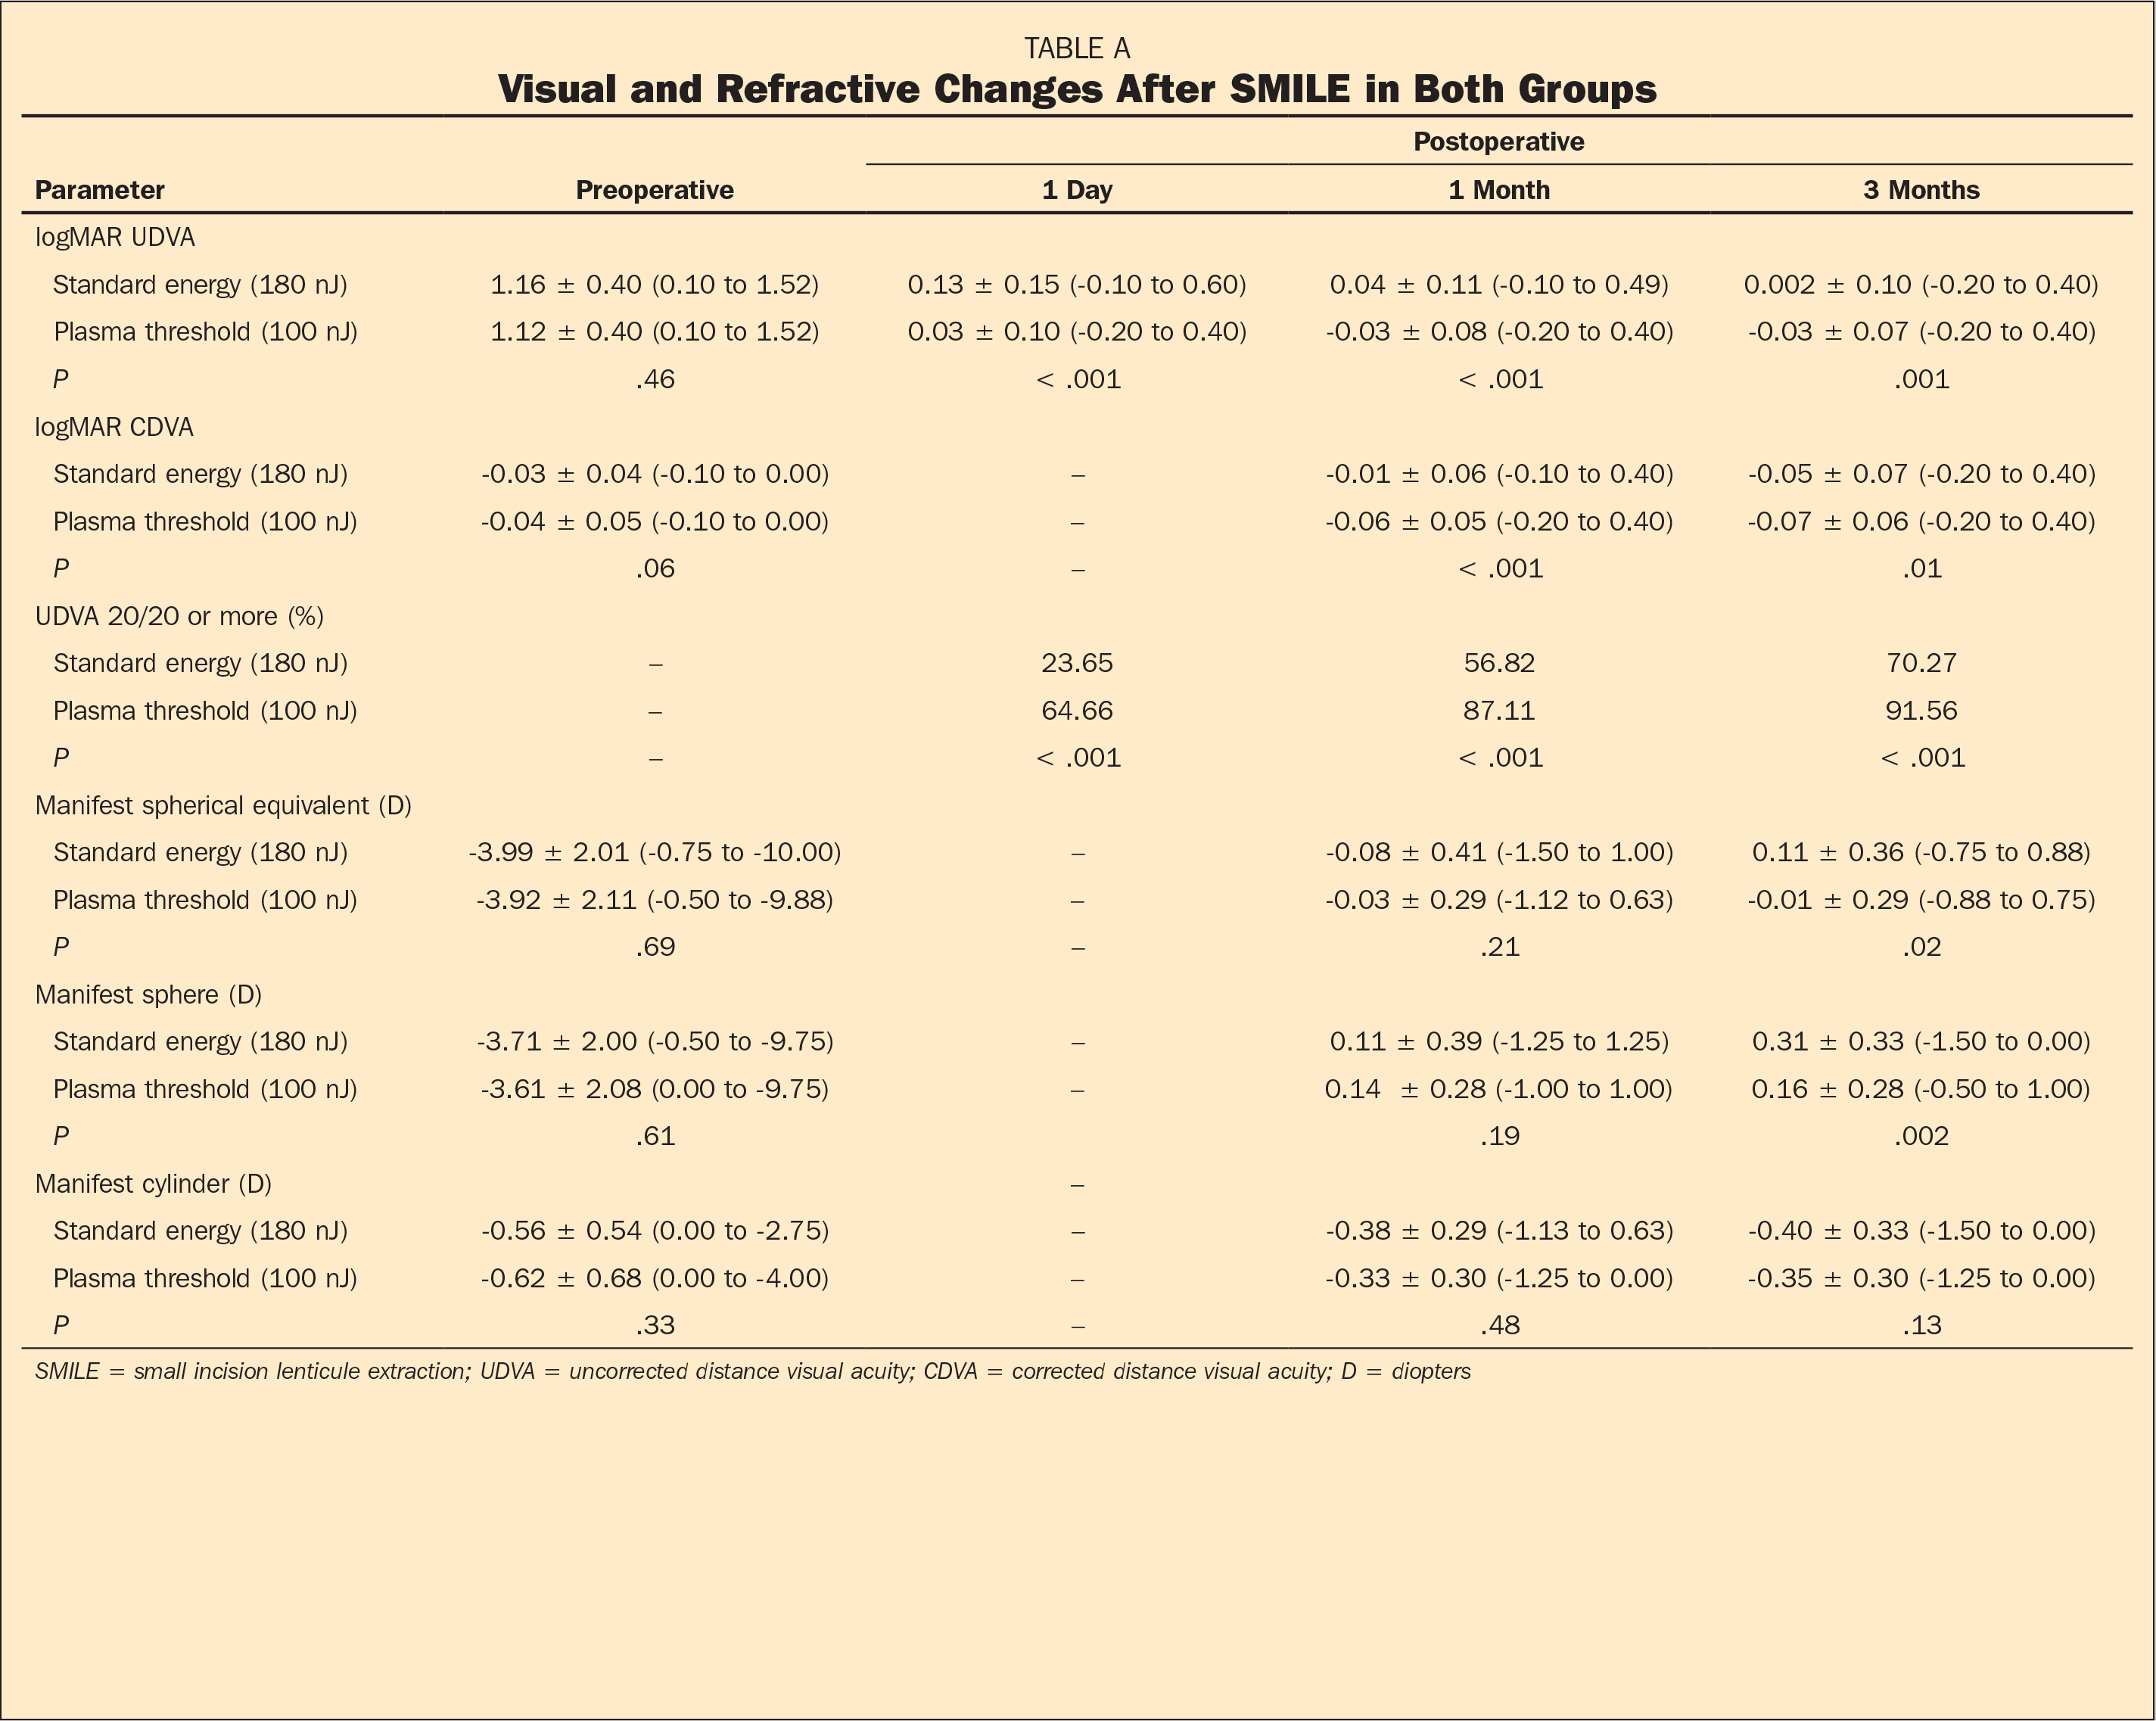 Visual and Refractive Changes After SMILE in Both Groups